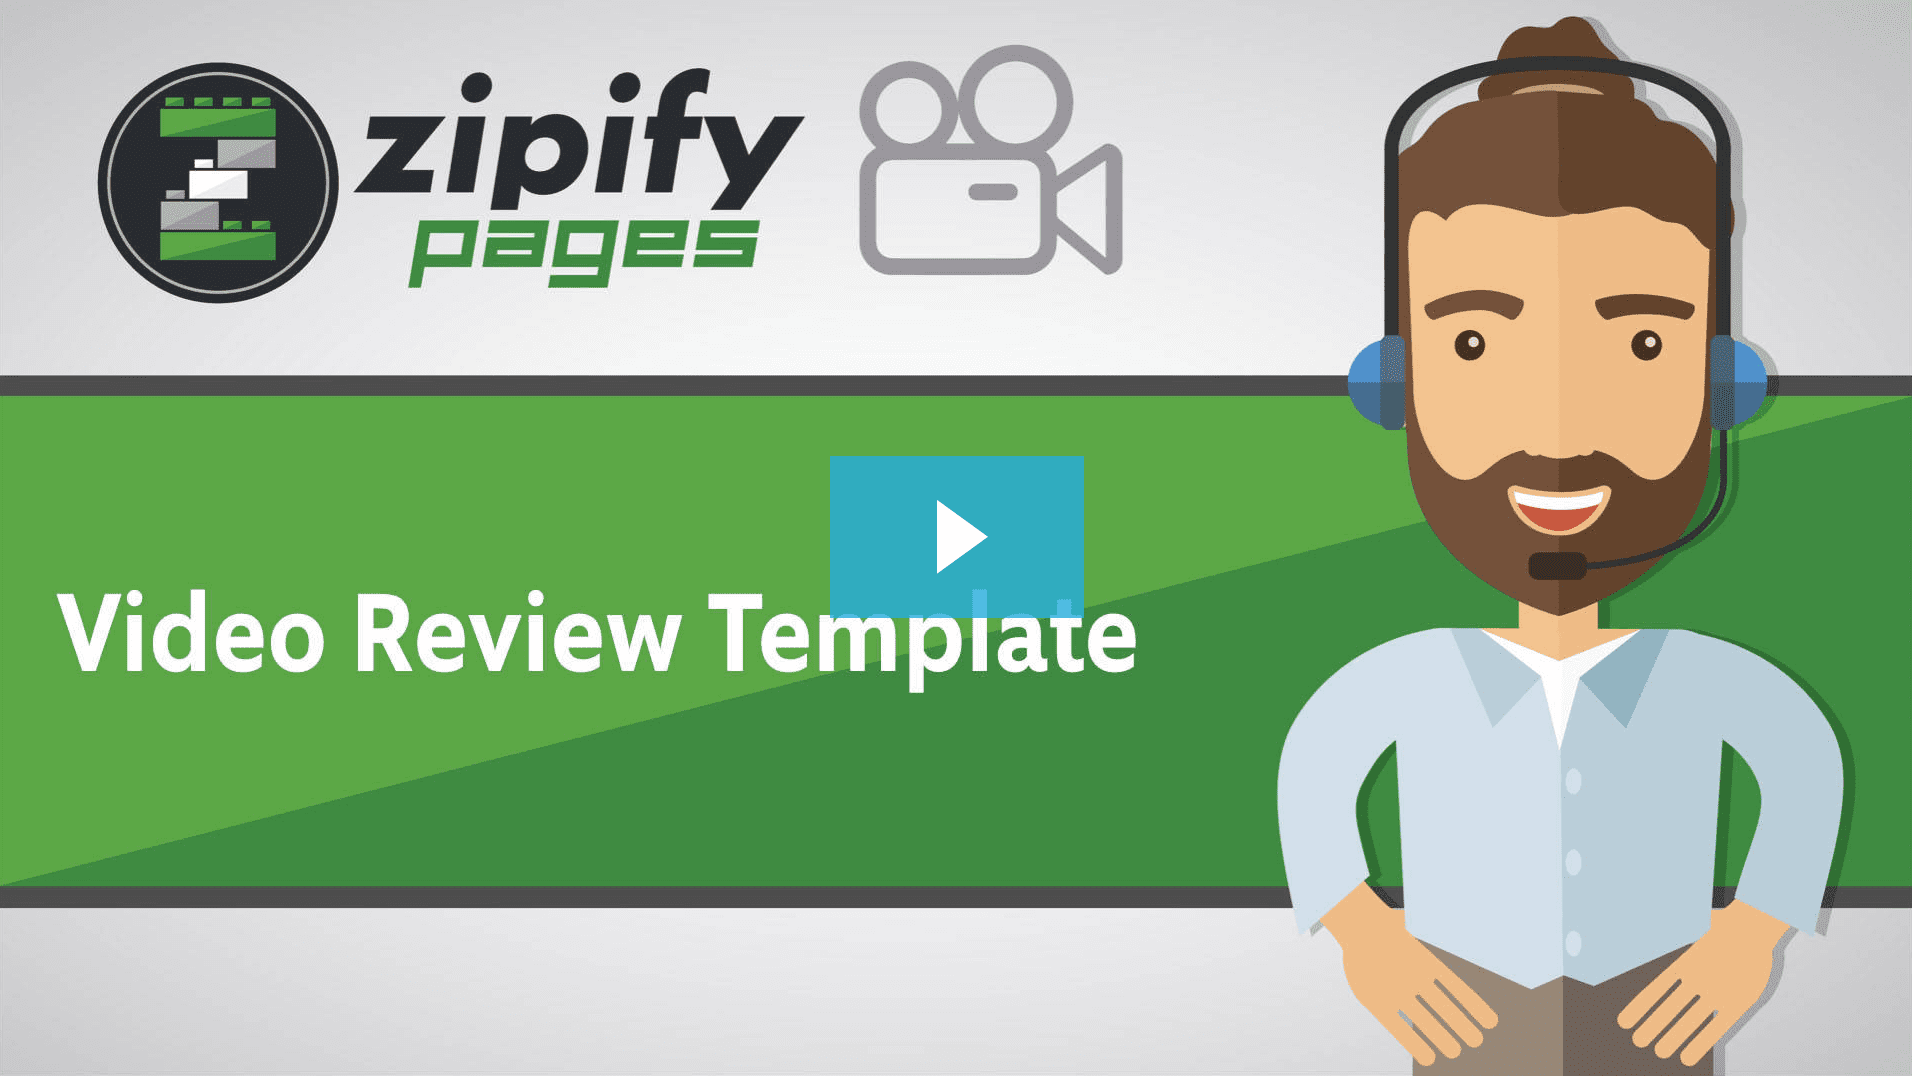 Zipify pages - Video Review template